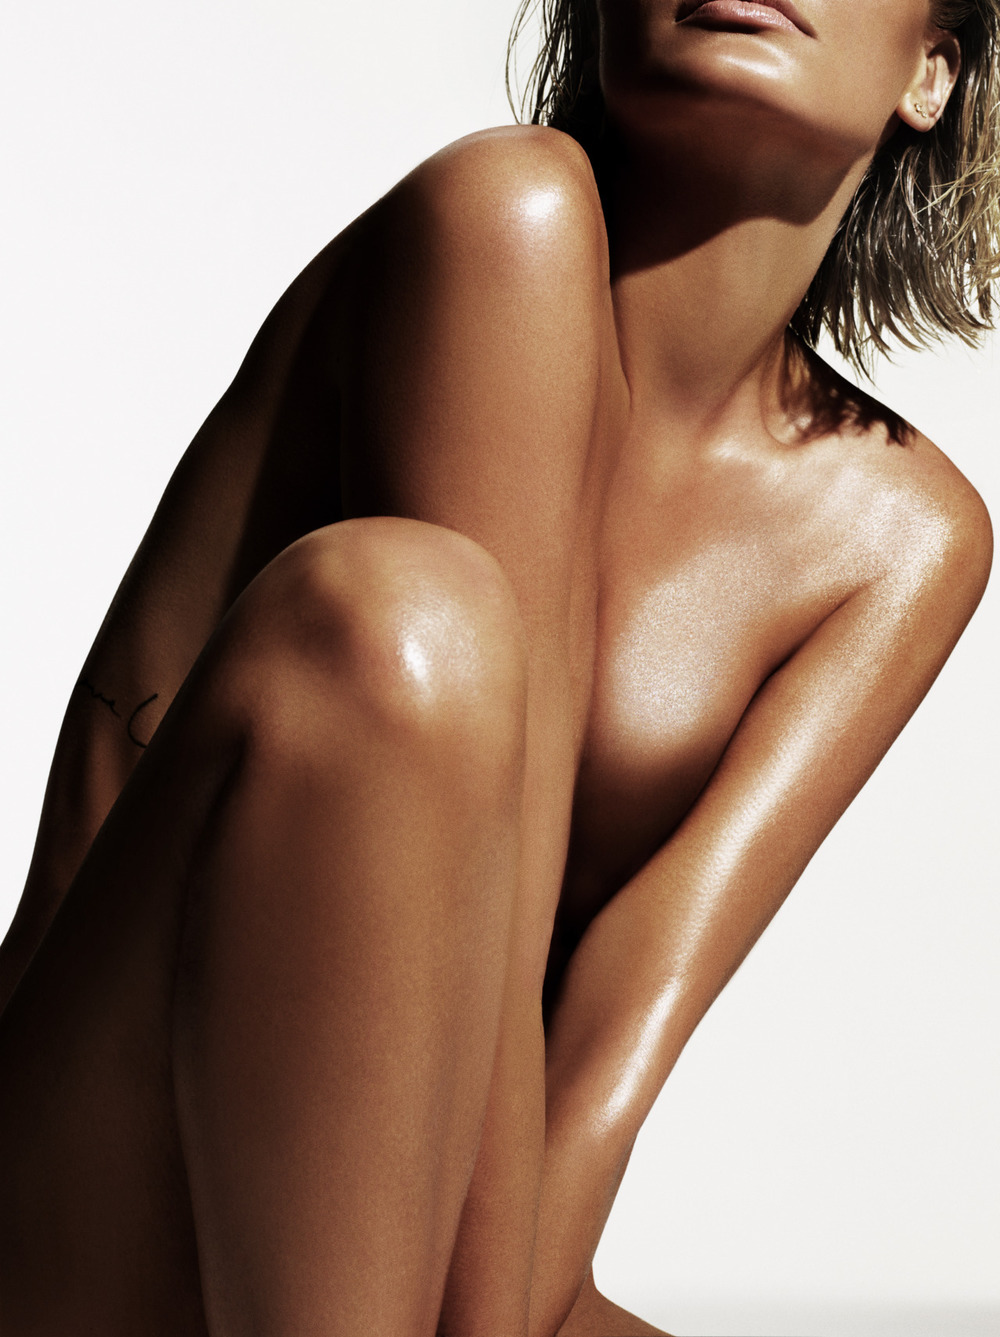 iamlarabingle: THE BASE BY LARA BINGLE X LARA BINGLE Lara Bingle ( iamlarabingle, being-lara-bingle for The Base (@thebasebylb), photographed by Dario Catellani dariocatellani Retouched by HOUSE